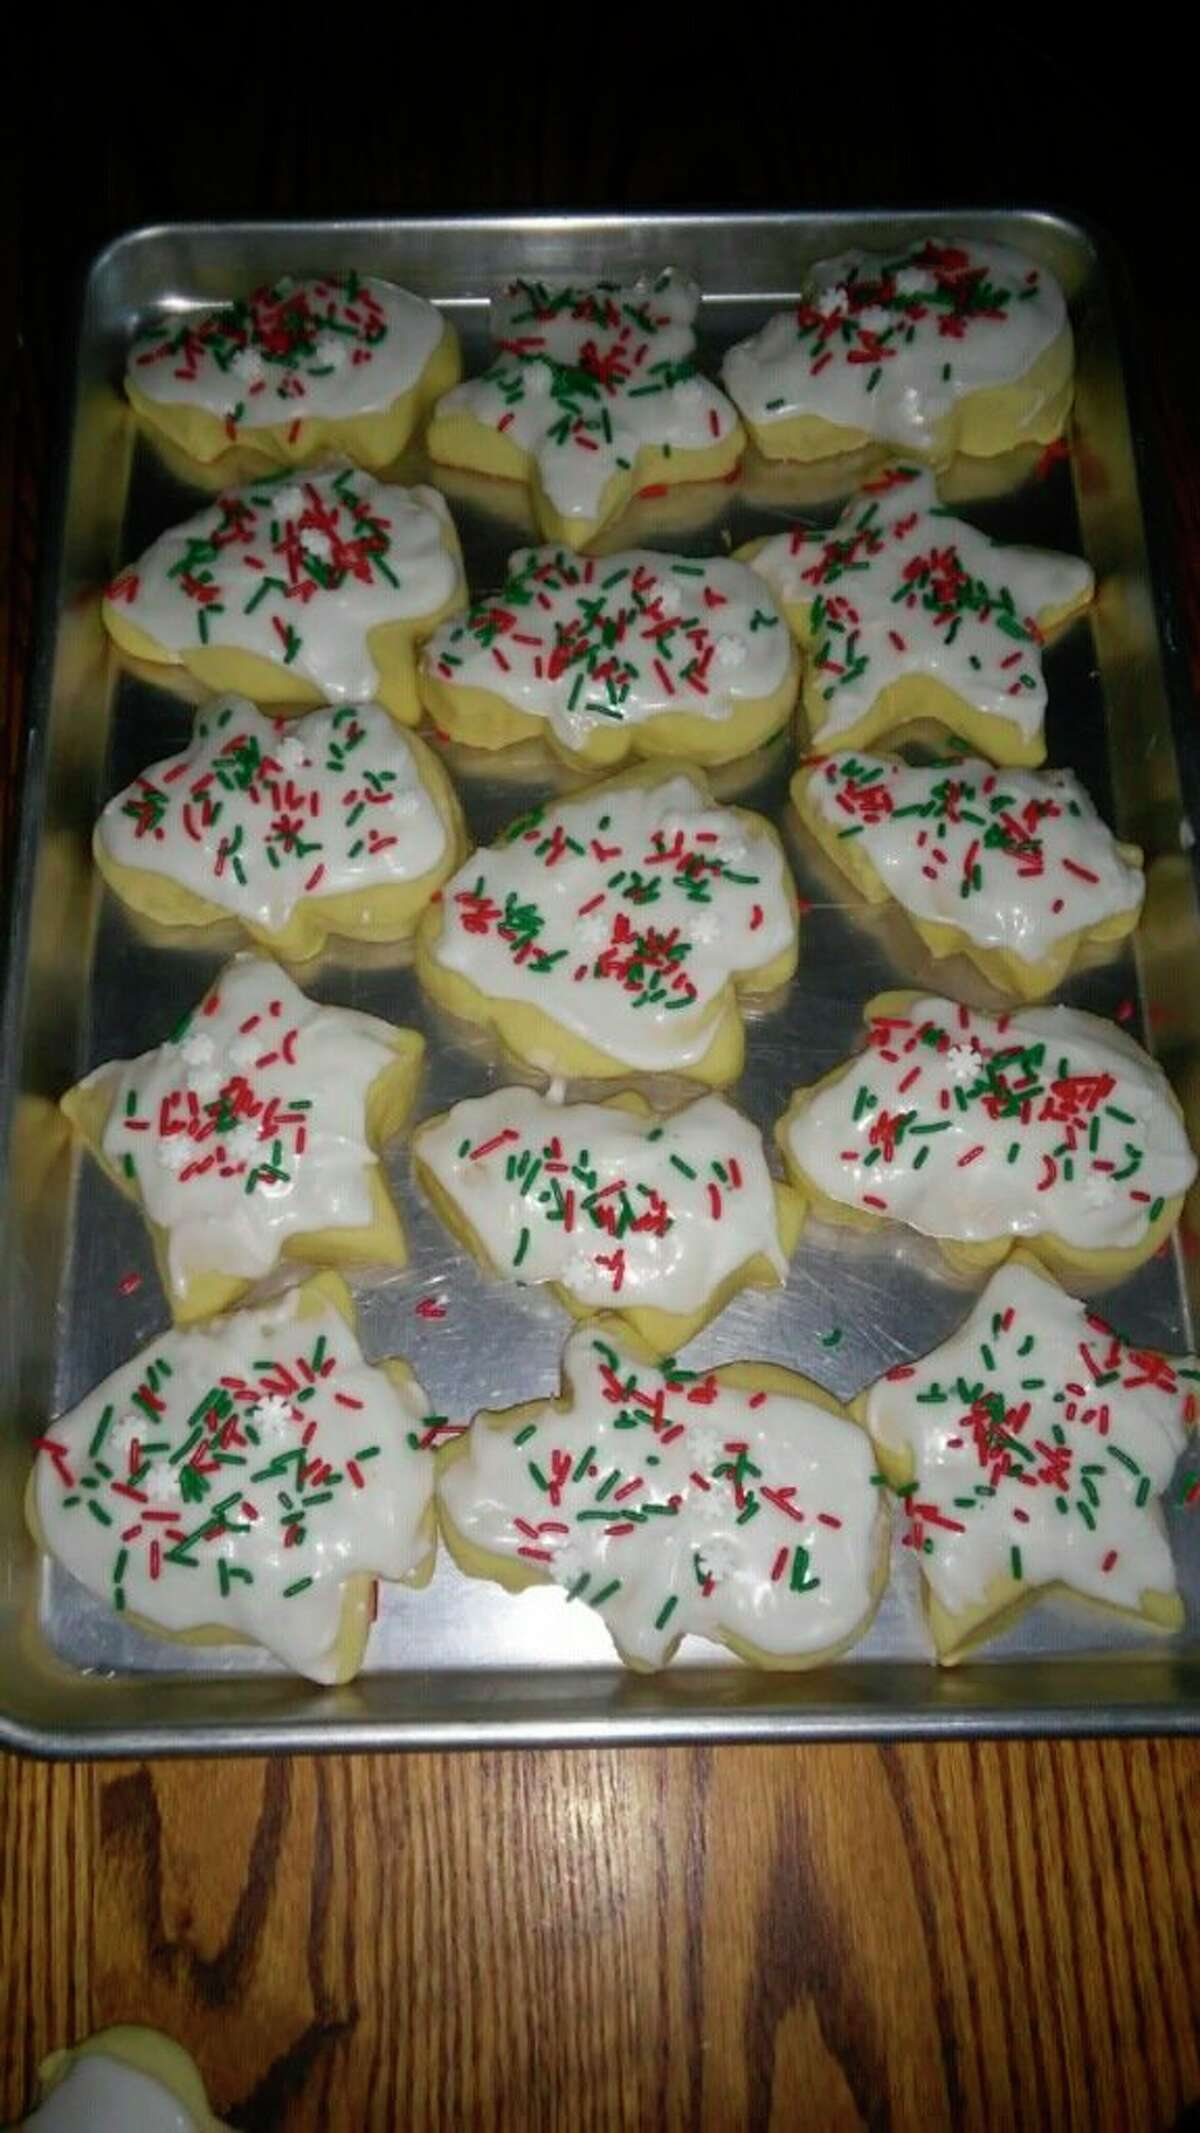 Daughter Verena and the grandchildren carry on with the tradition of making cut-out cookies for Christmas. (Courtesy photo)